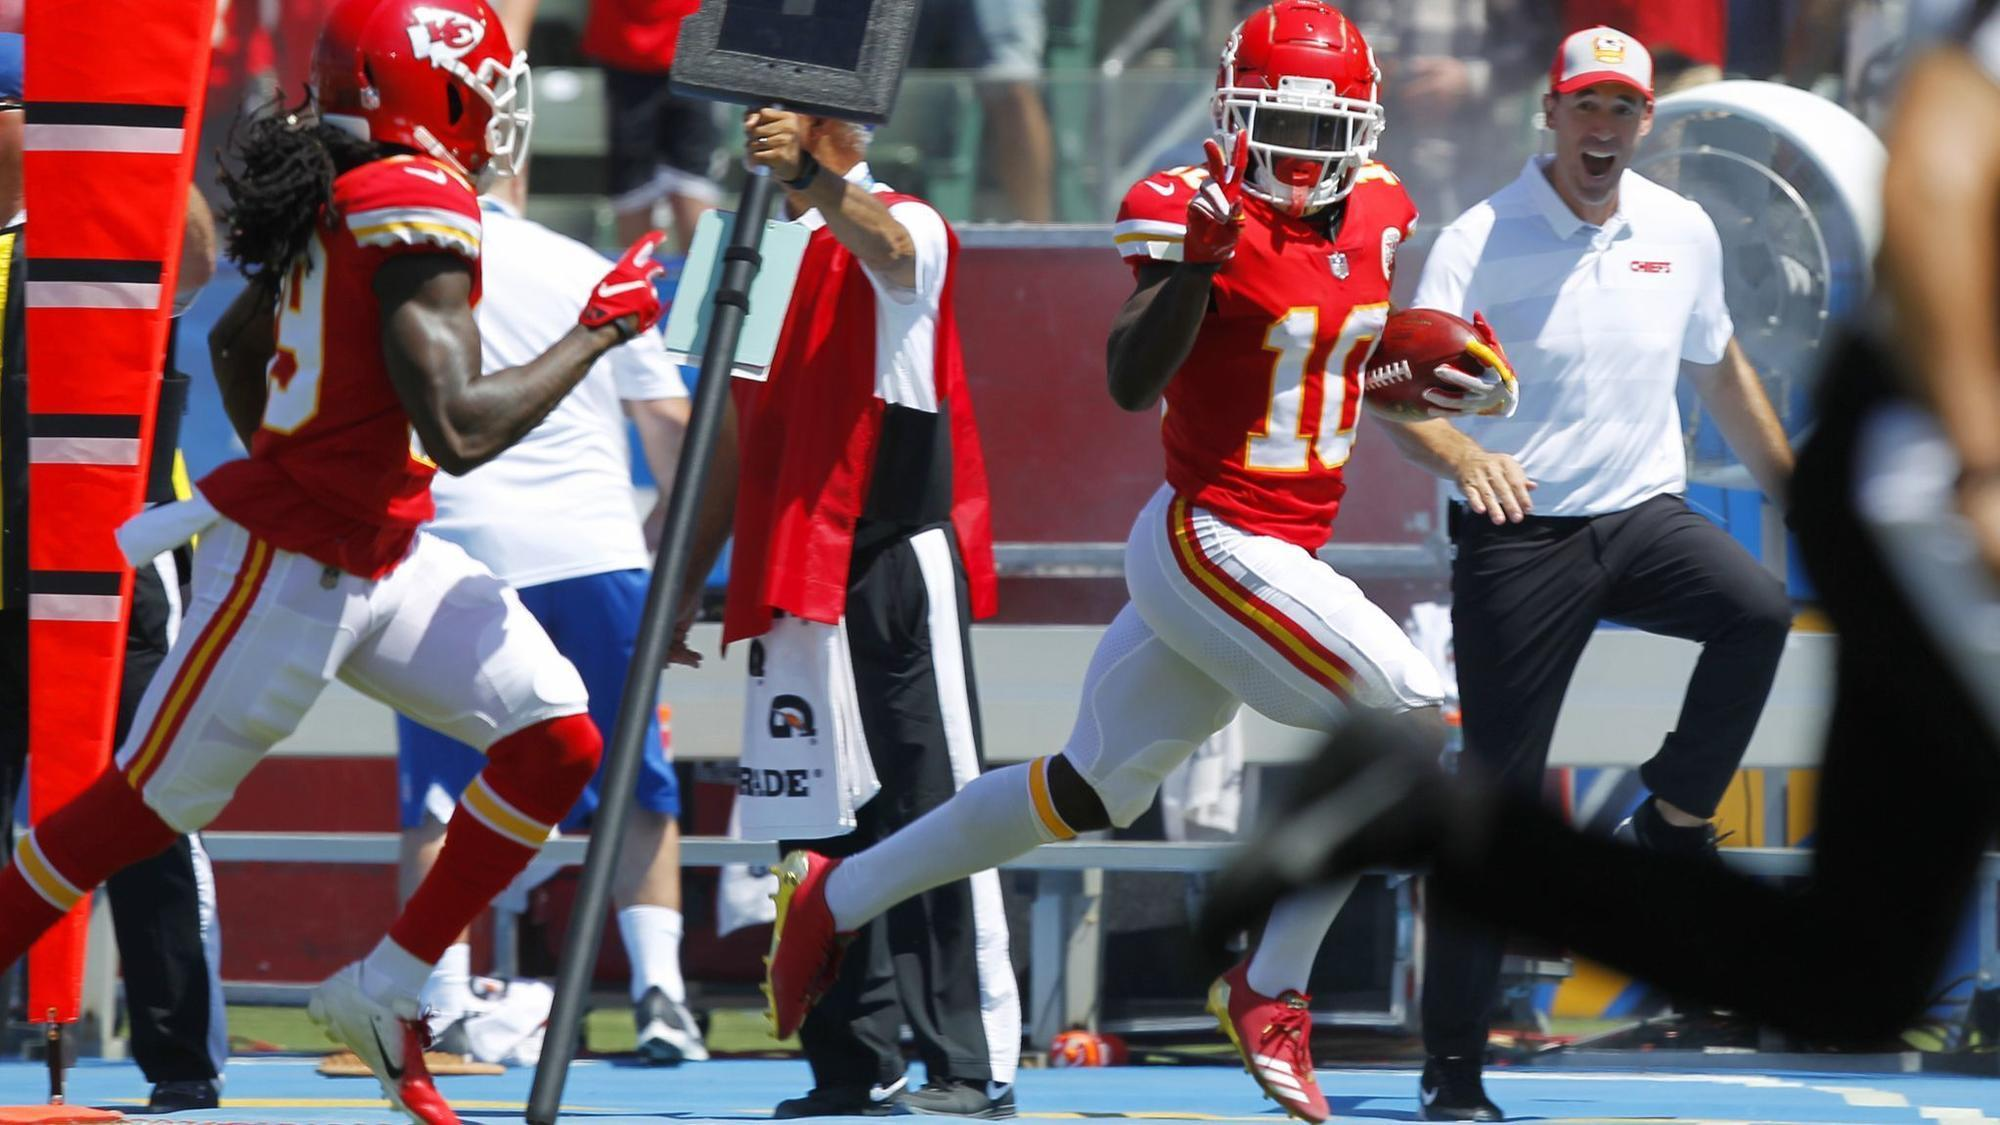 Sd-sp-chargers-chiefs-nfl-season-opener-tyreek-hill-20180909